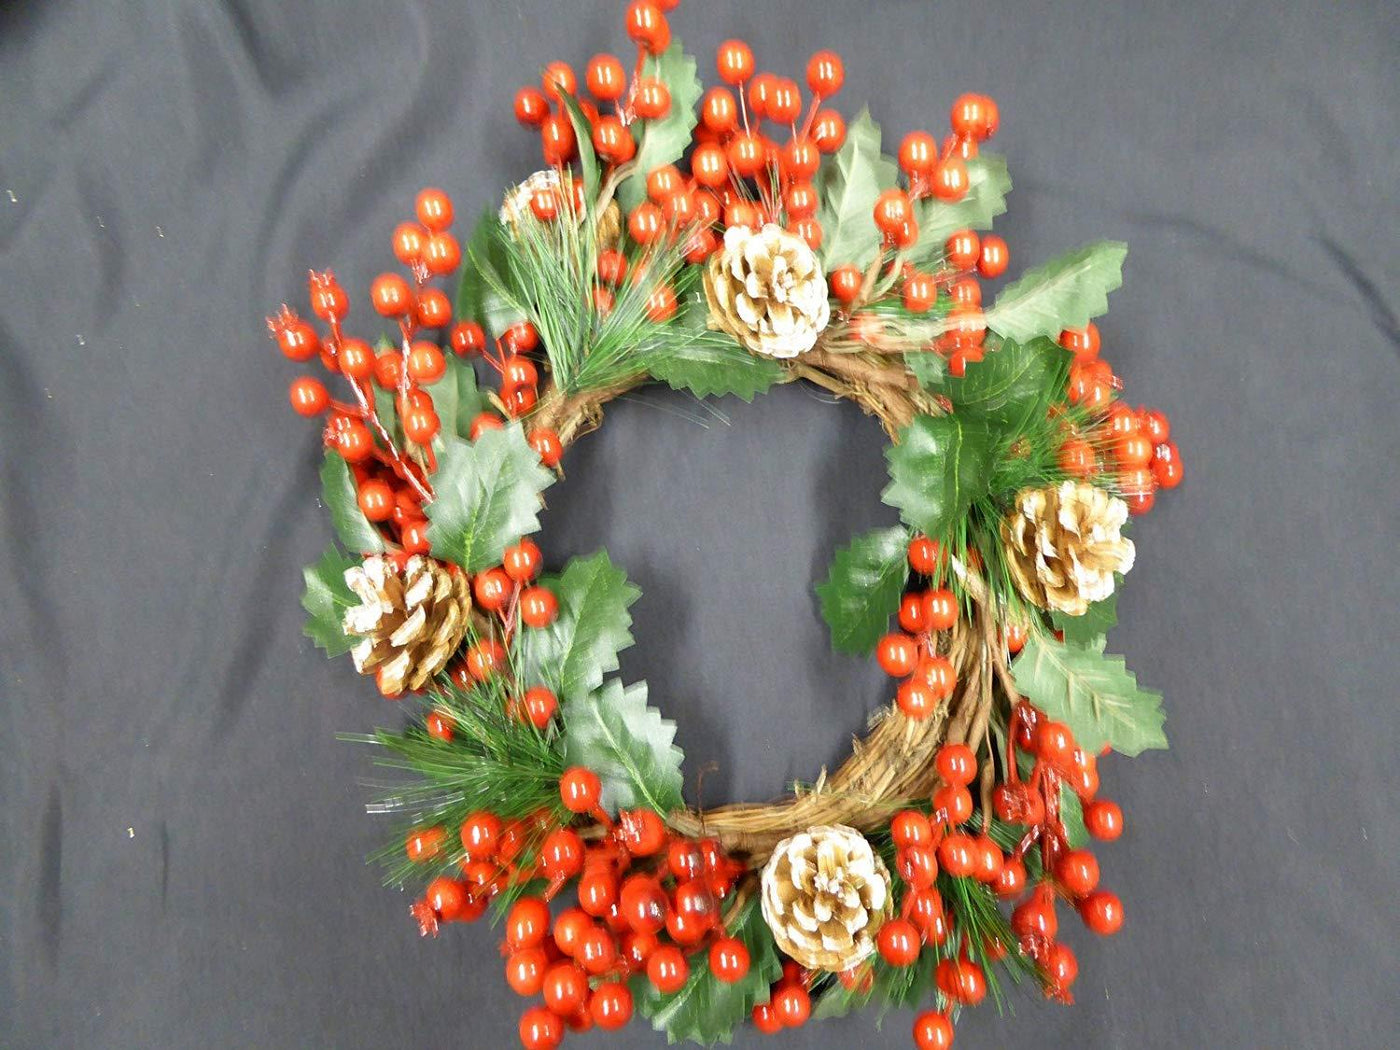 Green Holly Spray with Berries 30cm Great for Floral Arrange,ents x 4